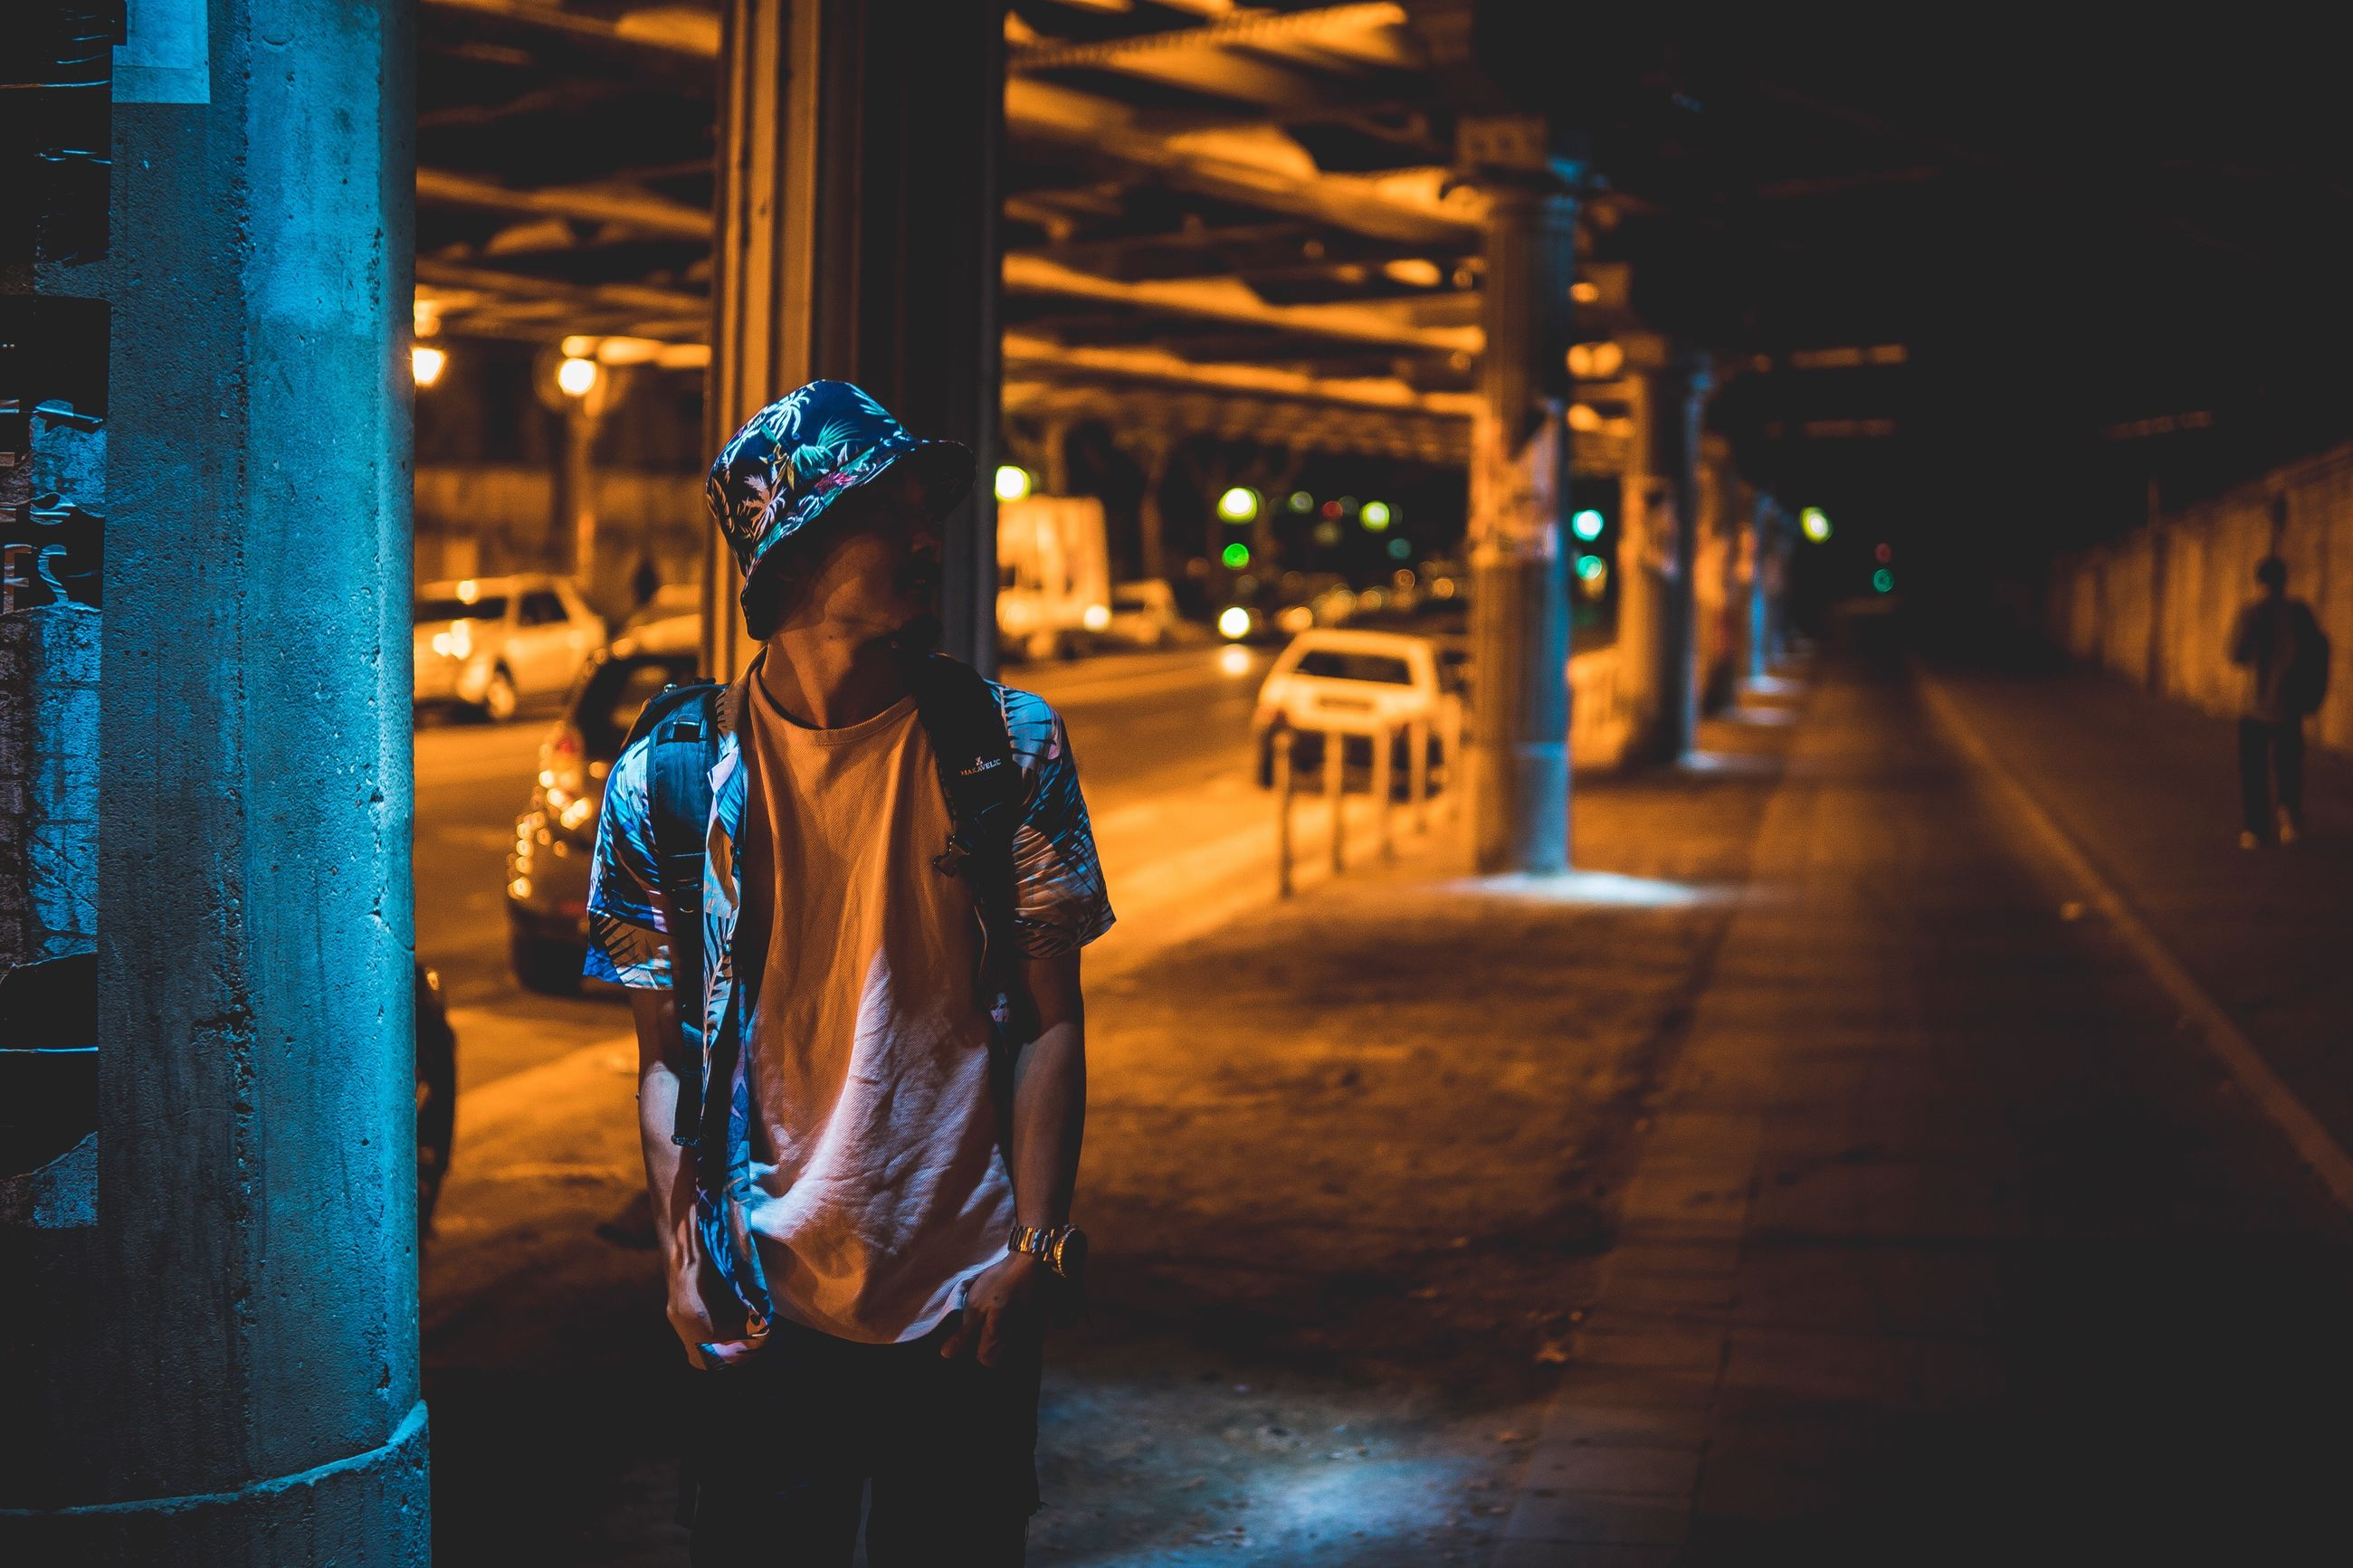 night, real people, illuminated, walking, one person, lifestyles, outdoors, built structure, architecture, standing, men, building exterior, warm clothing, city, young adult, people